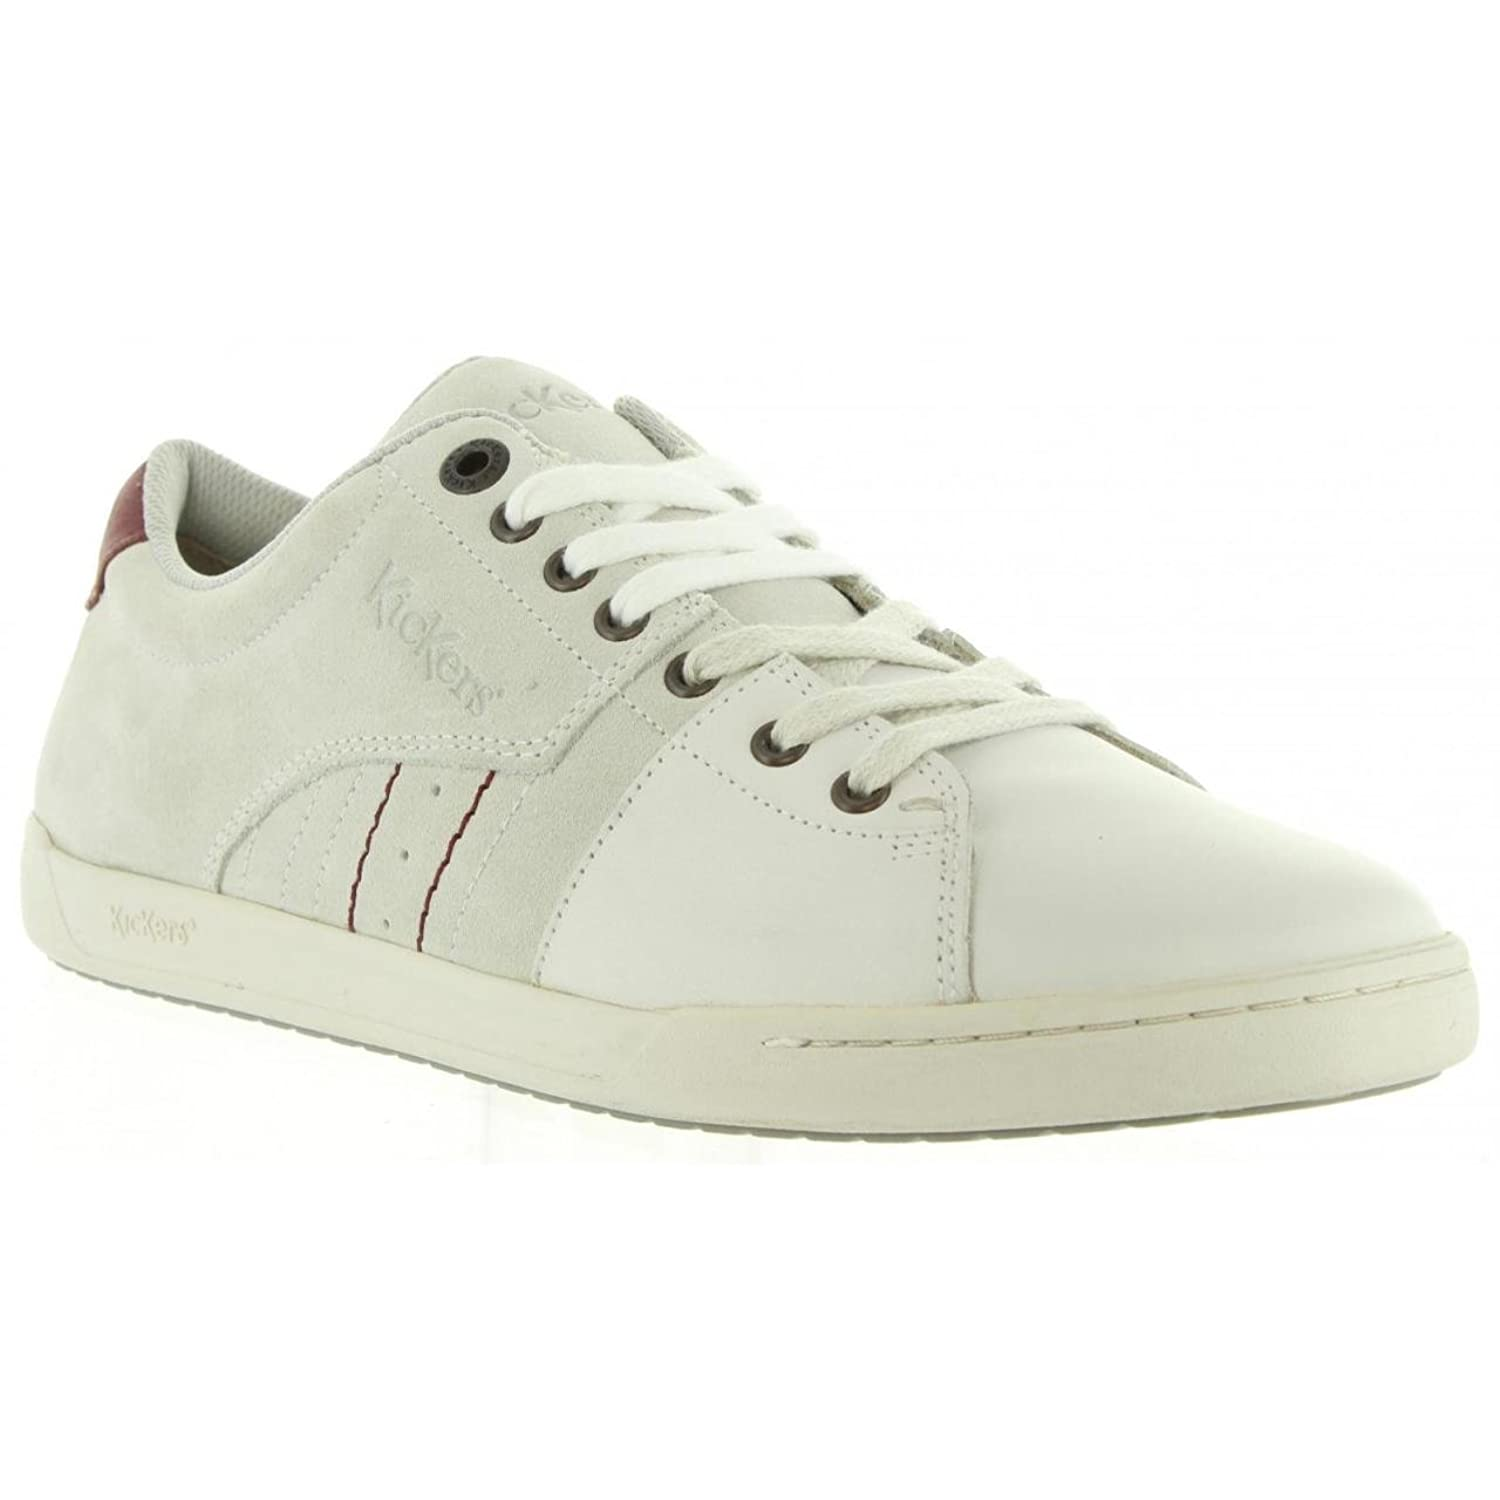 Chaussures pour Homme KICKERS 548530-60 CROTAL 3 BLANC jBgacN9